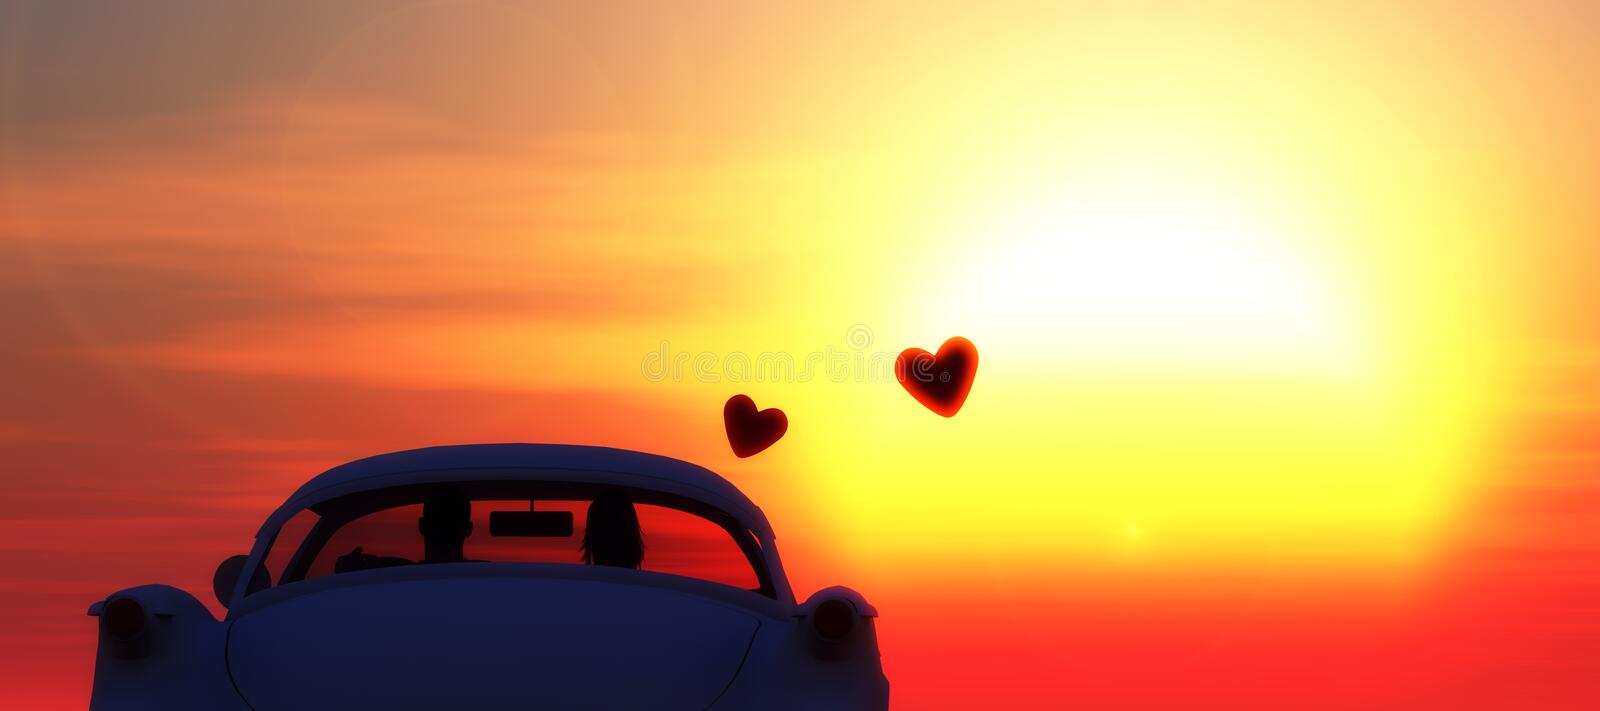 Love car. Susnset and love car stock image